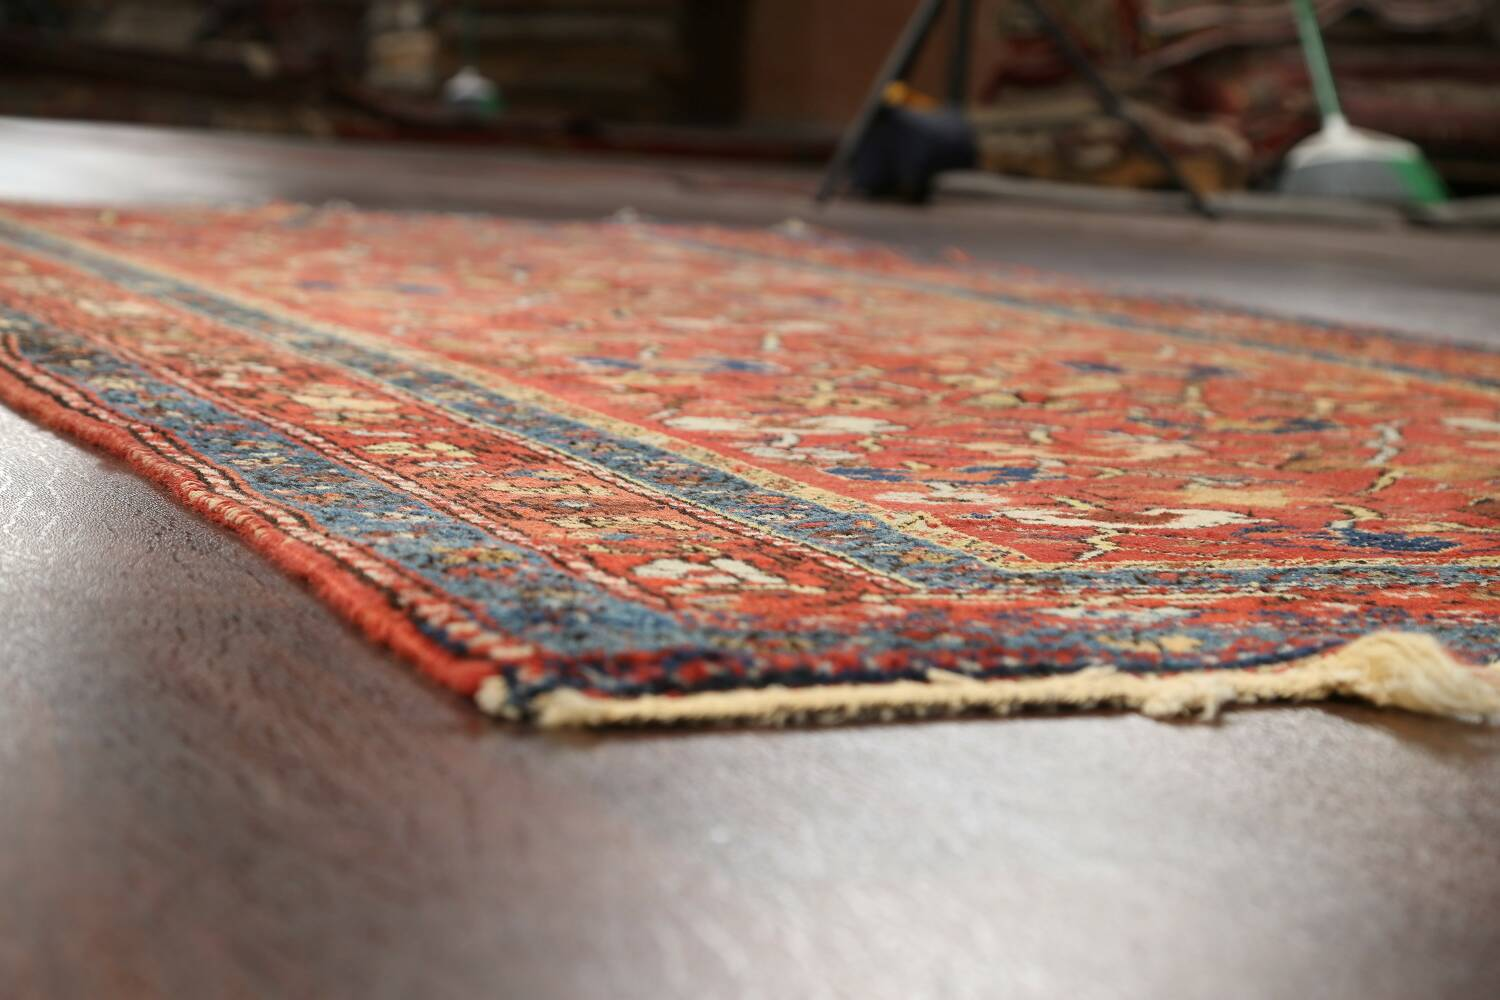 Pre-1900 Antique Vegetable Dye Sultanabad Persian Area Rug 5x10 image 6